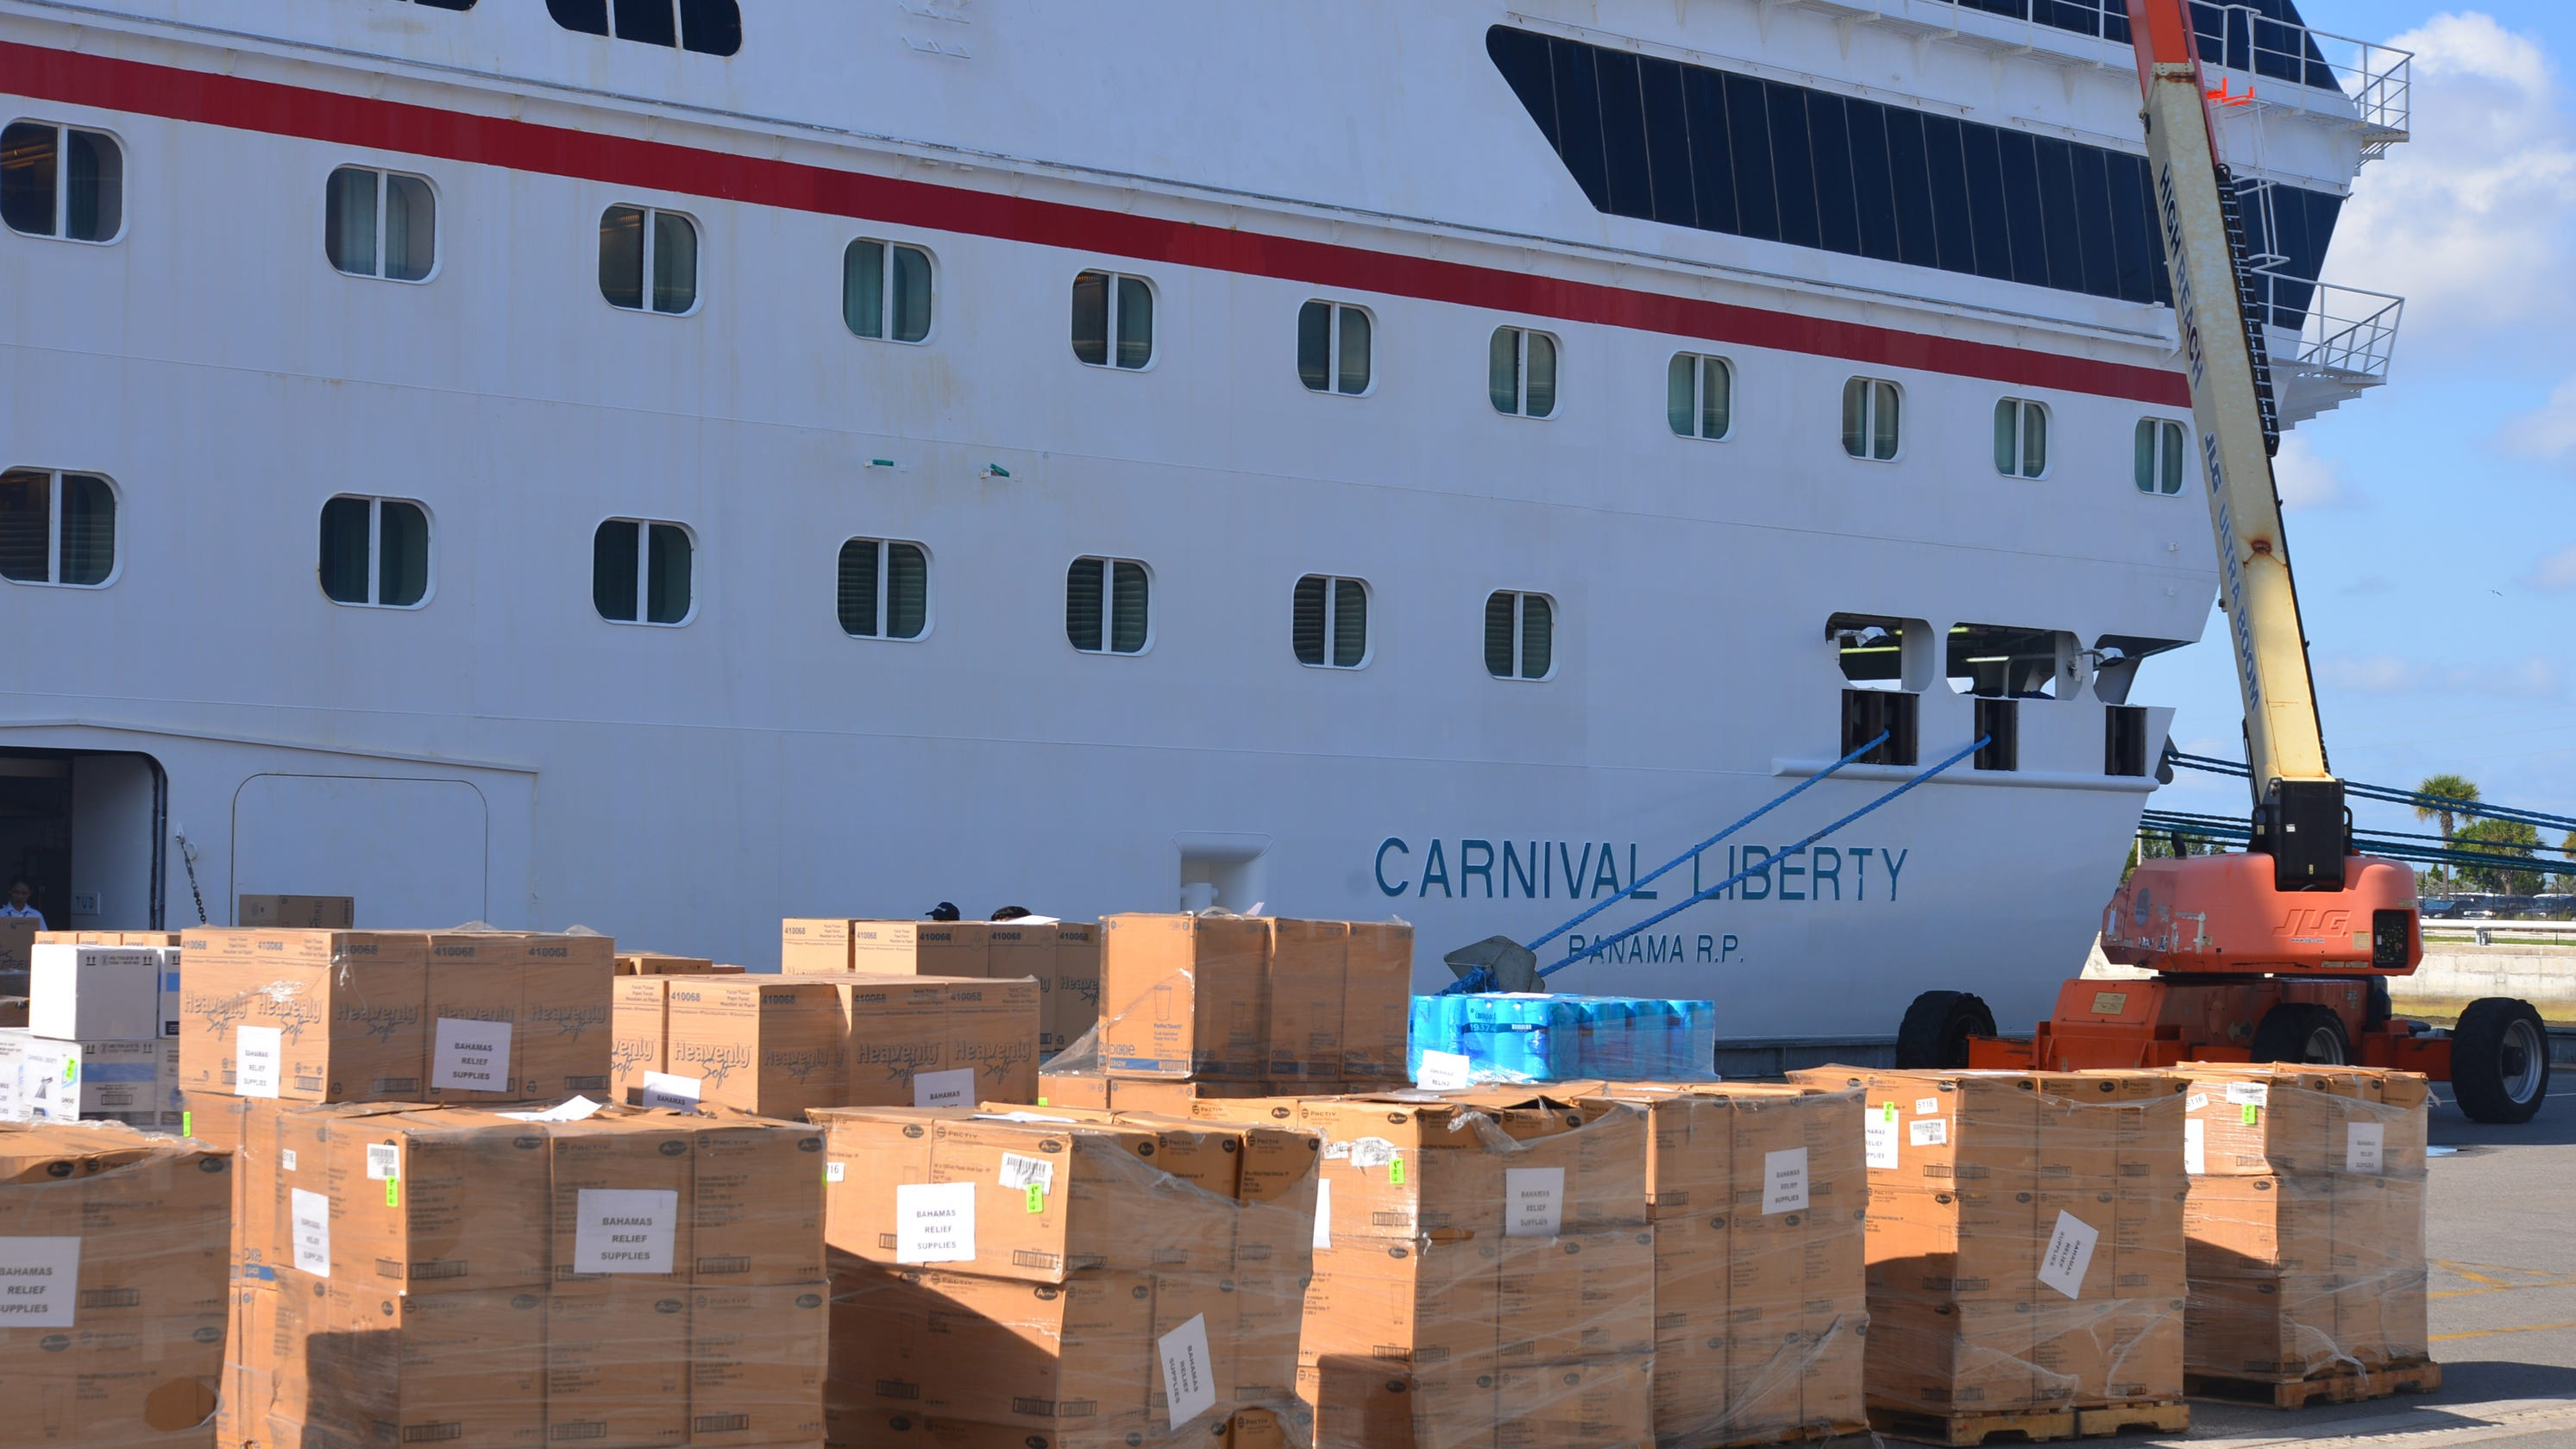 Bahamas Help Carnival Cruise Ship Loaded With Supplies For